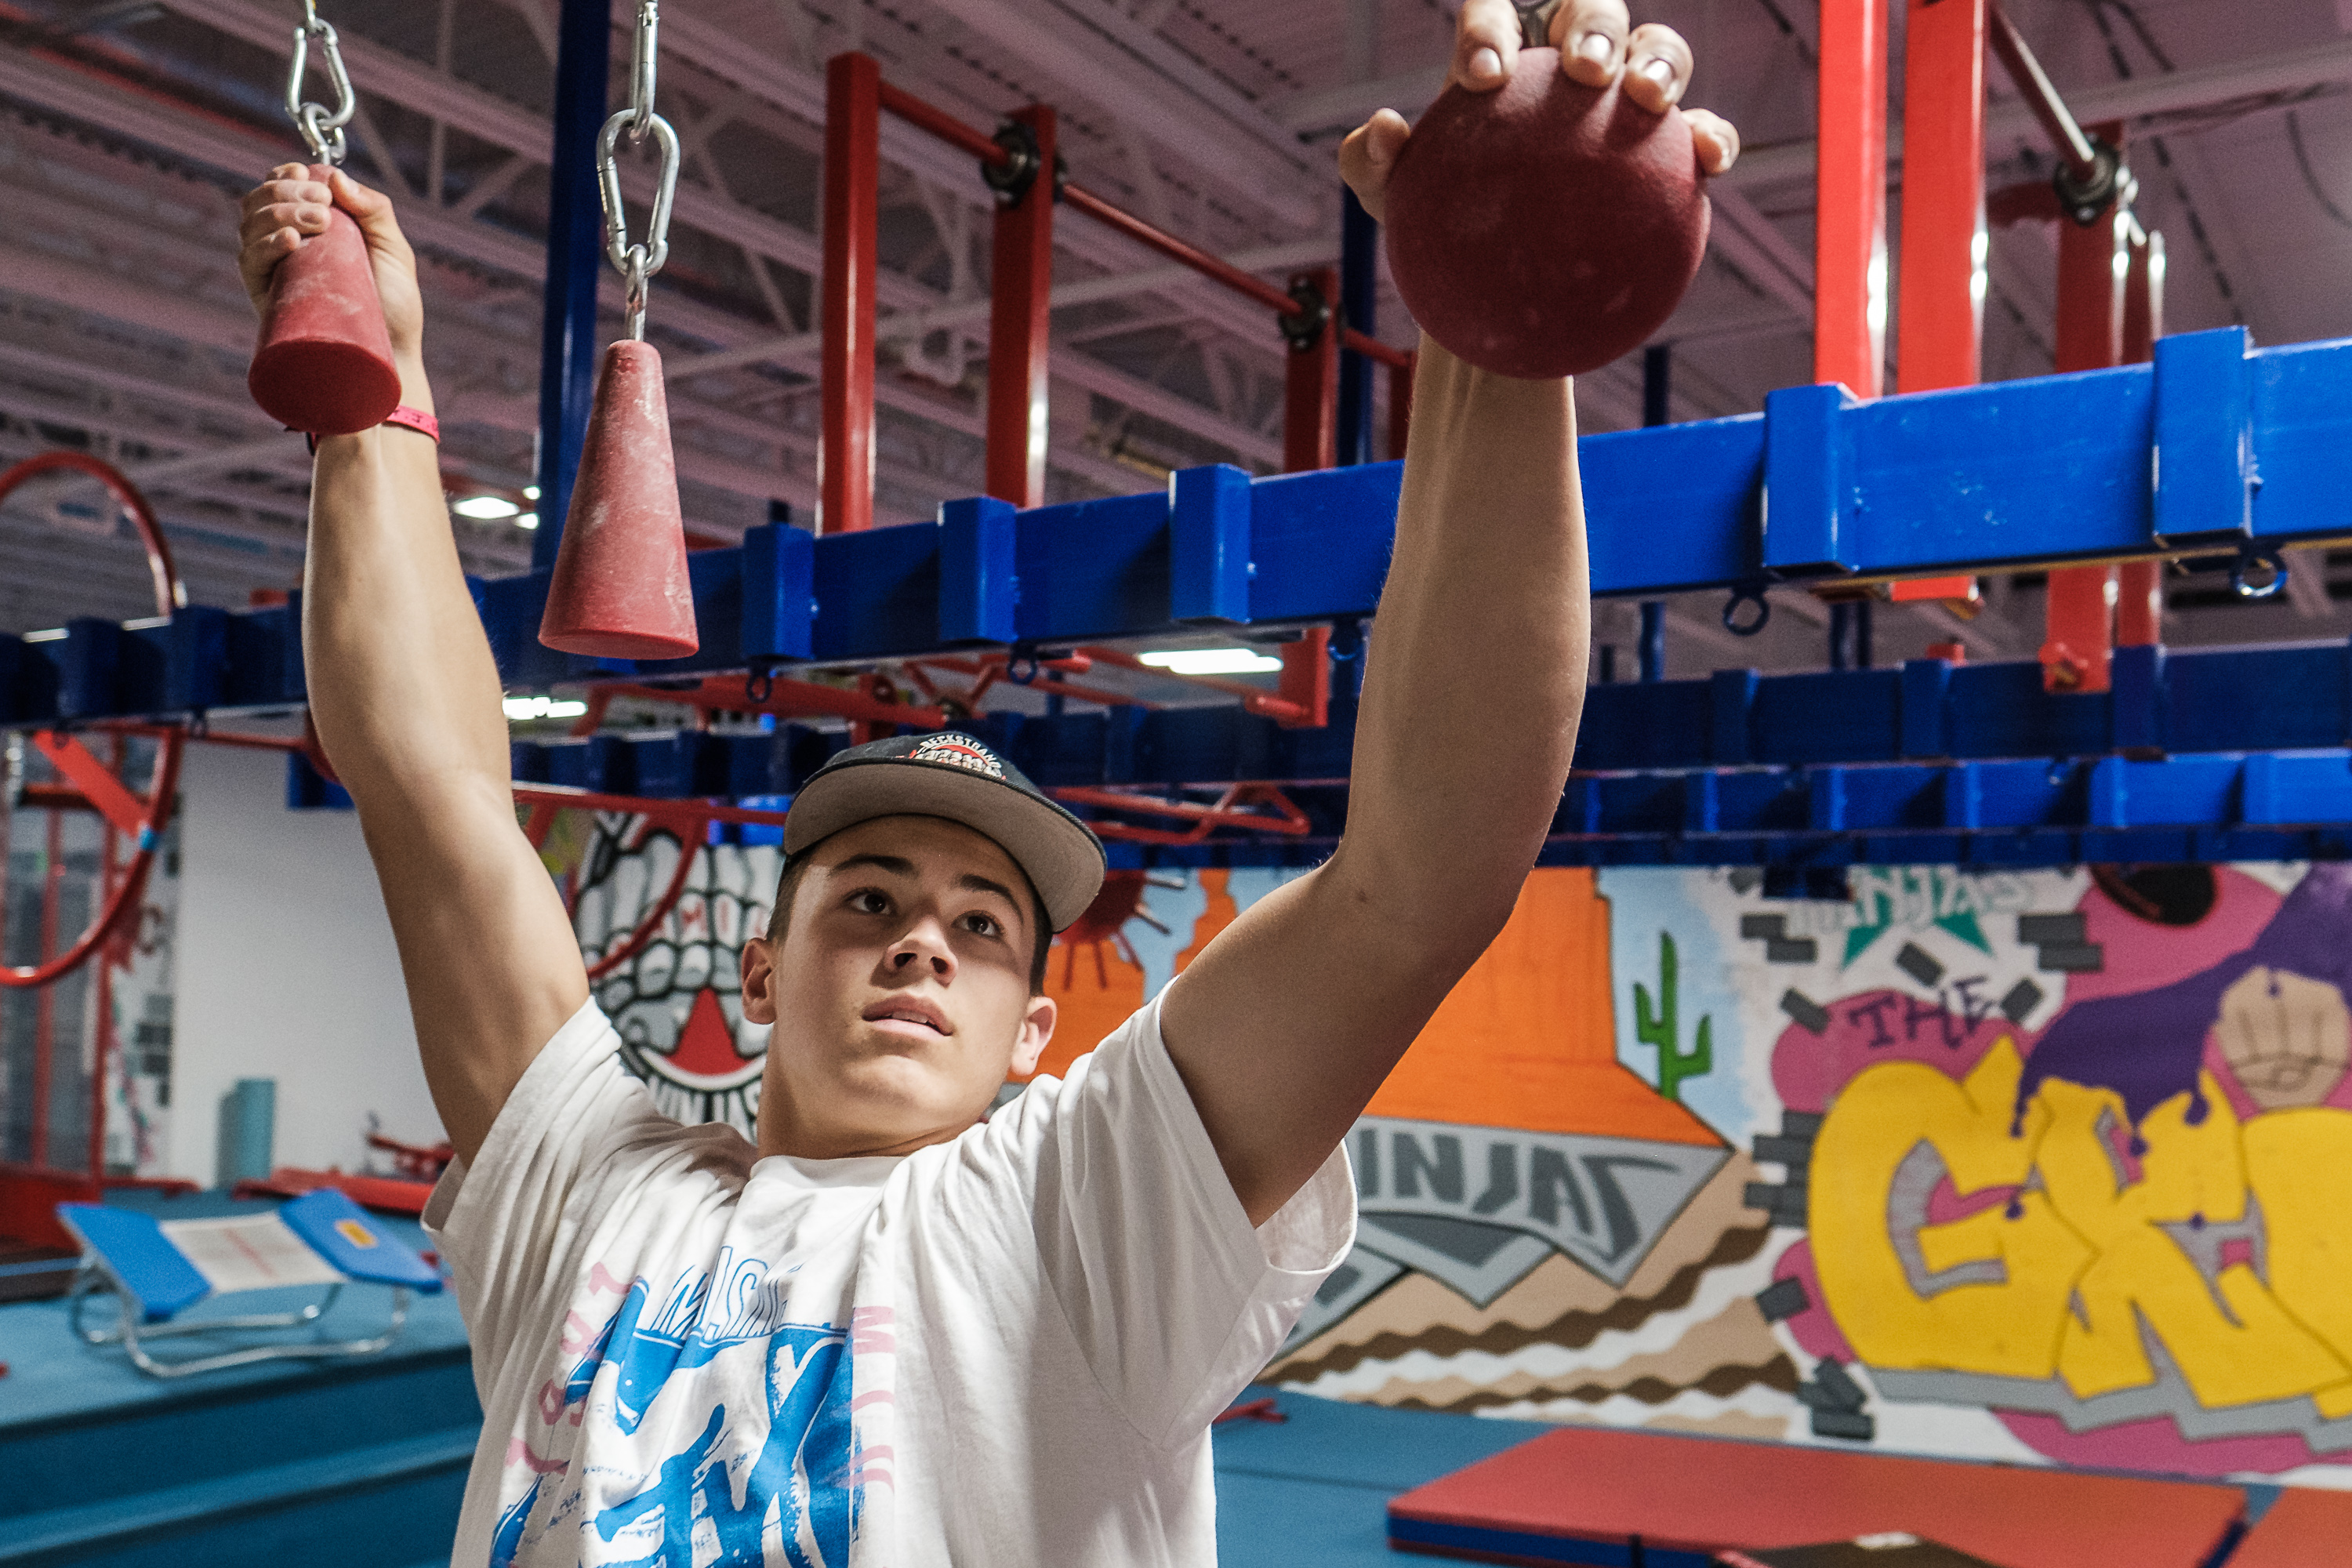 Kai Beckstrand demonstrates parts of his training regimen at his family's gym in St. George on Saturday, August 28, 2021. Beckstrand's efforts landed the 15-year-old in the finals of the competition television show American Ninja Warrior.